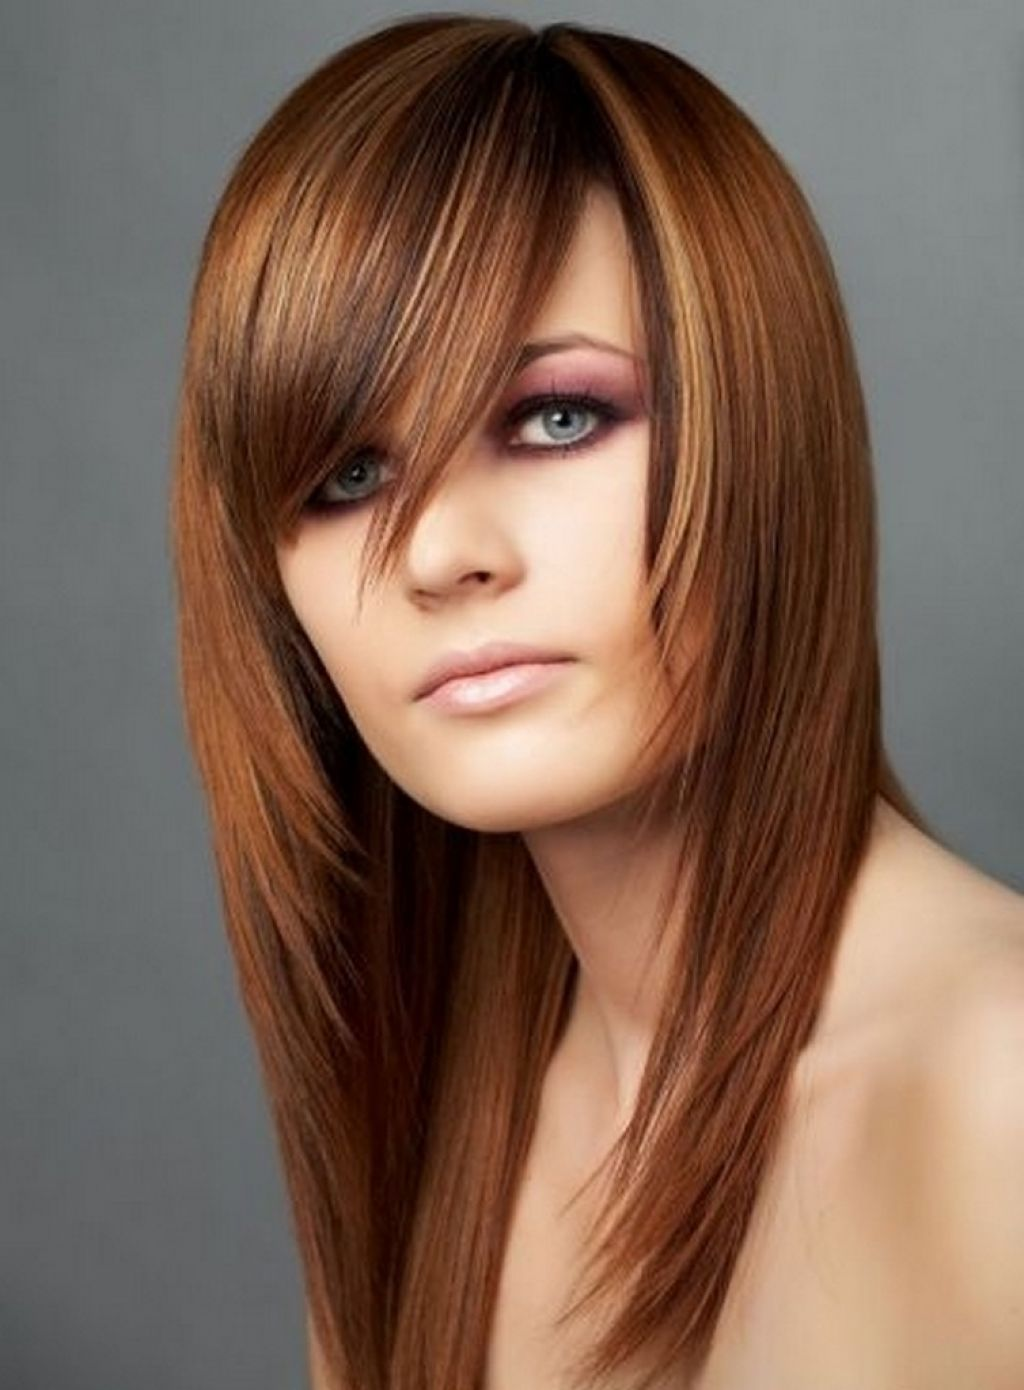 Streamlined Layered Hairstyles - Latest Hair Styles - Cute & Modern ...